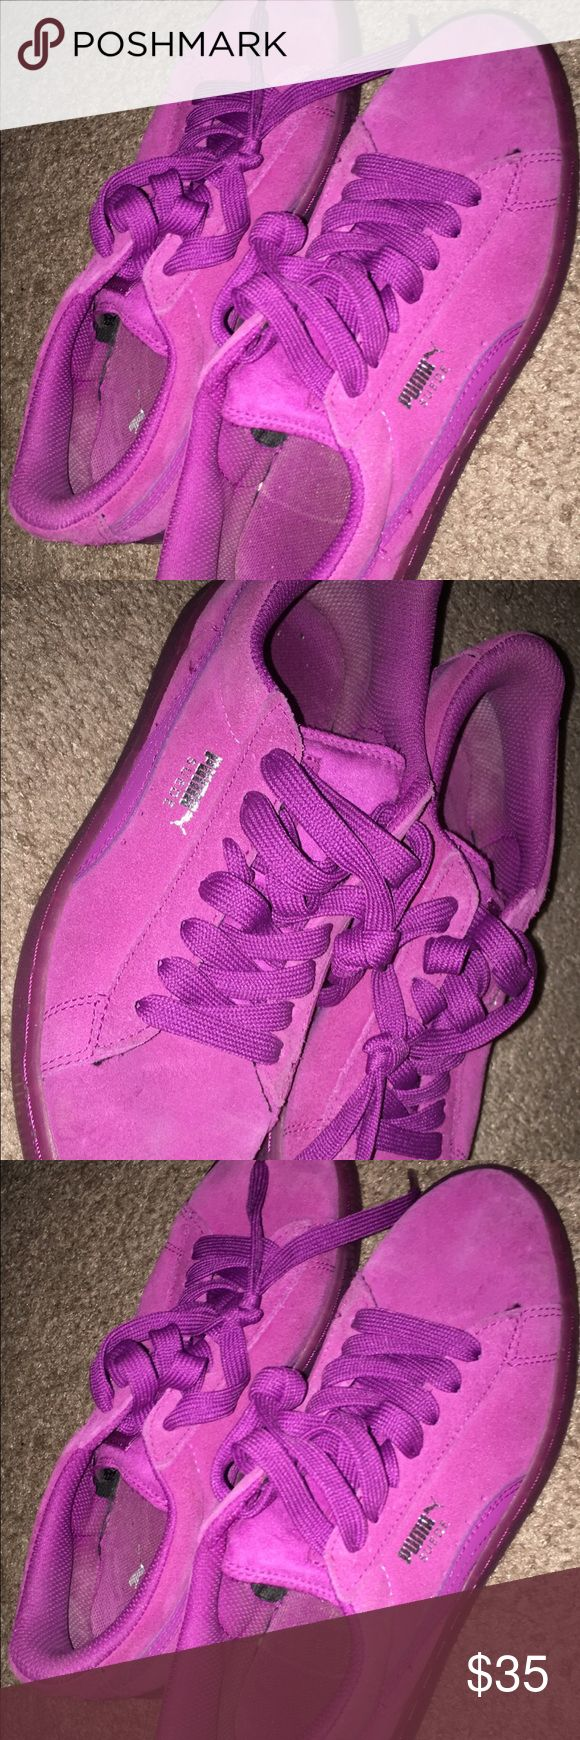 Purple/Pink Puma Suede sz 5.5y Cute worn a few times. In good condition. Purple/pink color. These are a size 5.5y so a 7/7.5 in women's. Puma Shoes Sneakers